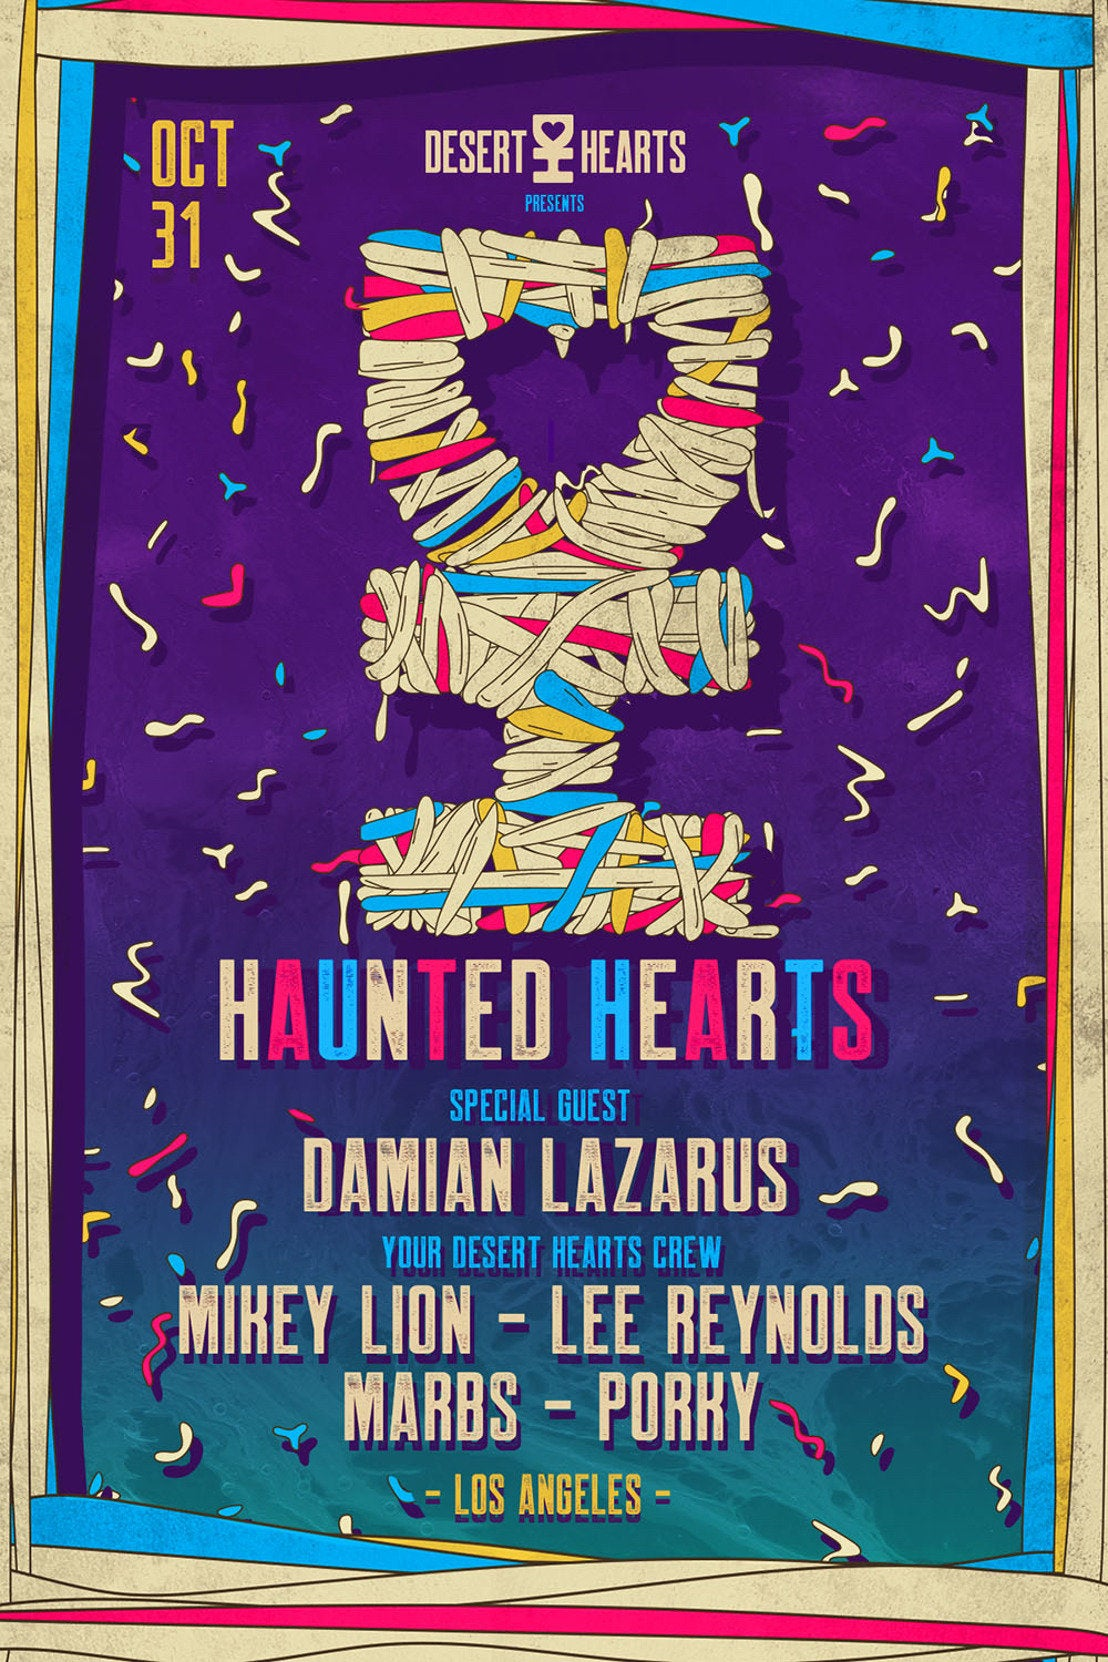 Haunted Hearts featuring Damian Lazarus at the Belasco Theatre